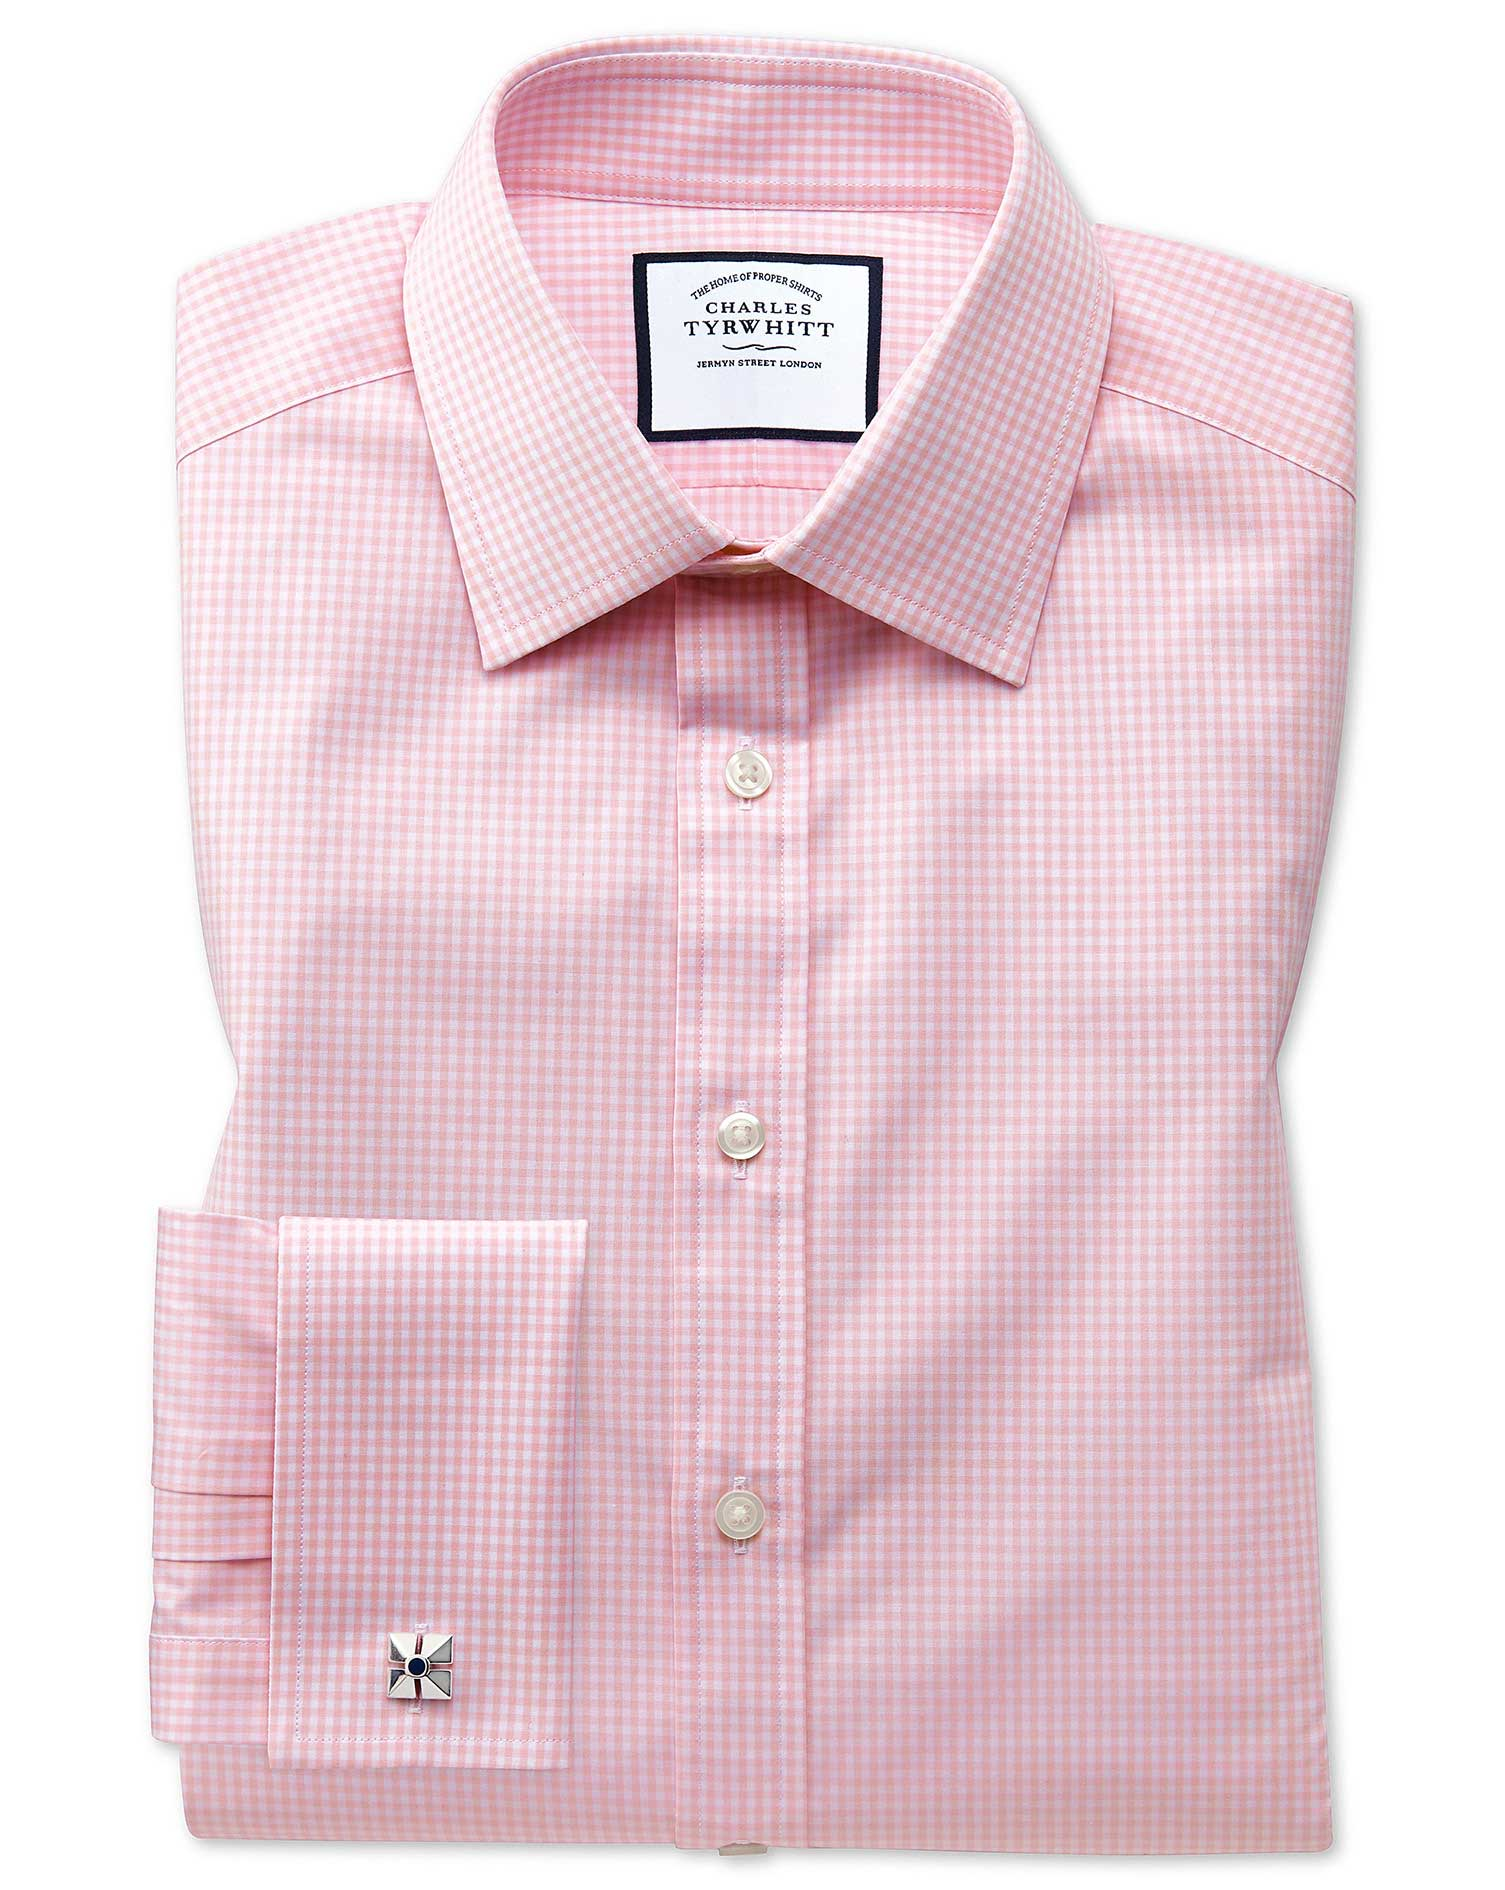 Extra Slim Fit Small Gingham Light Pink Cotton Formal Shirt Single Cuff Size 16/36 by Charles Tyrwhi